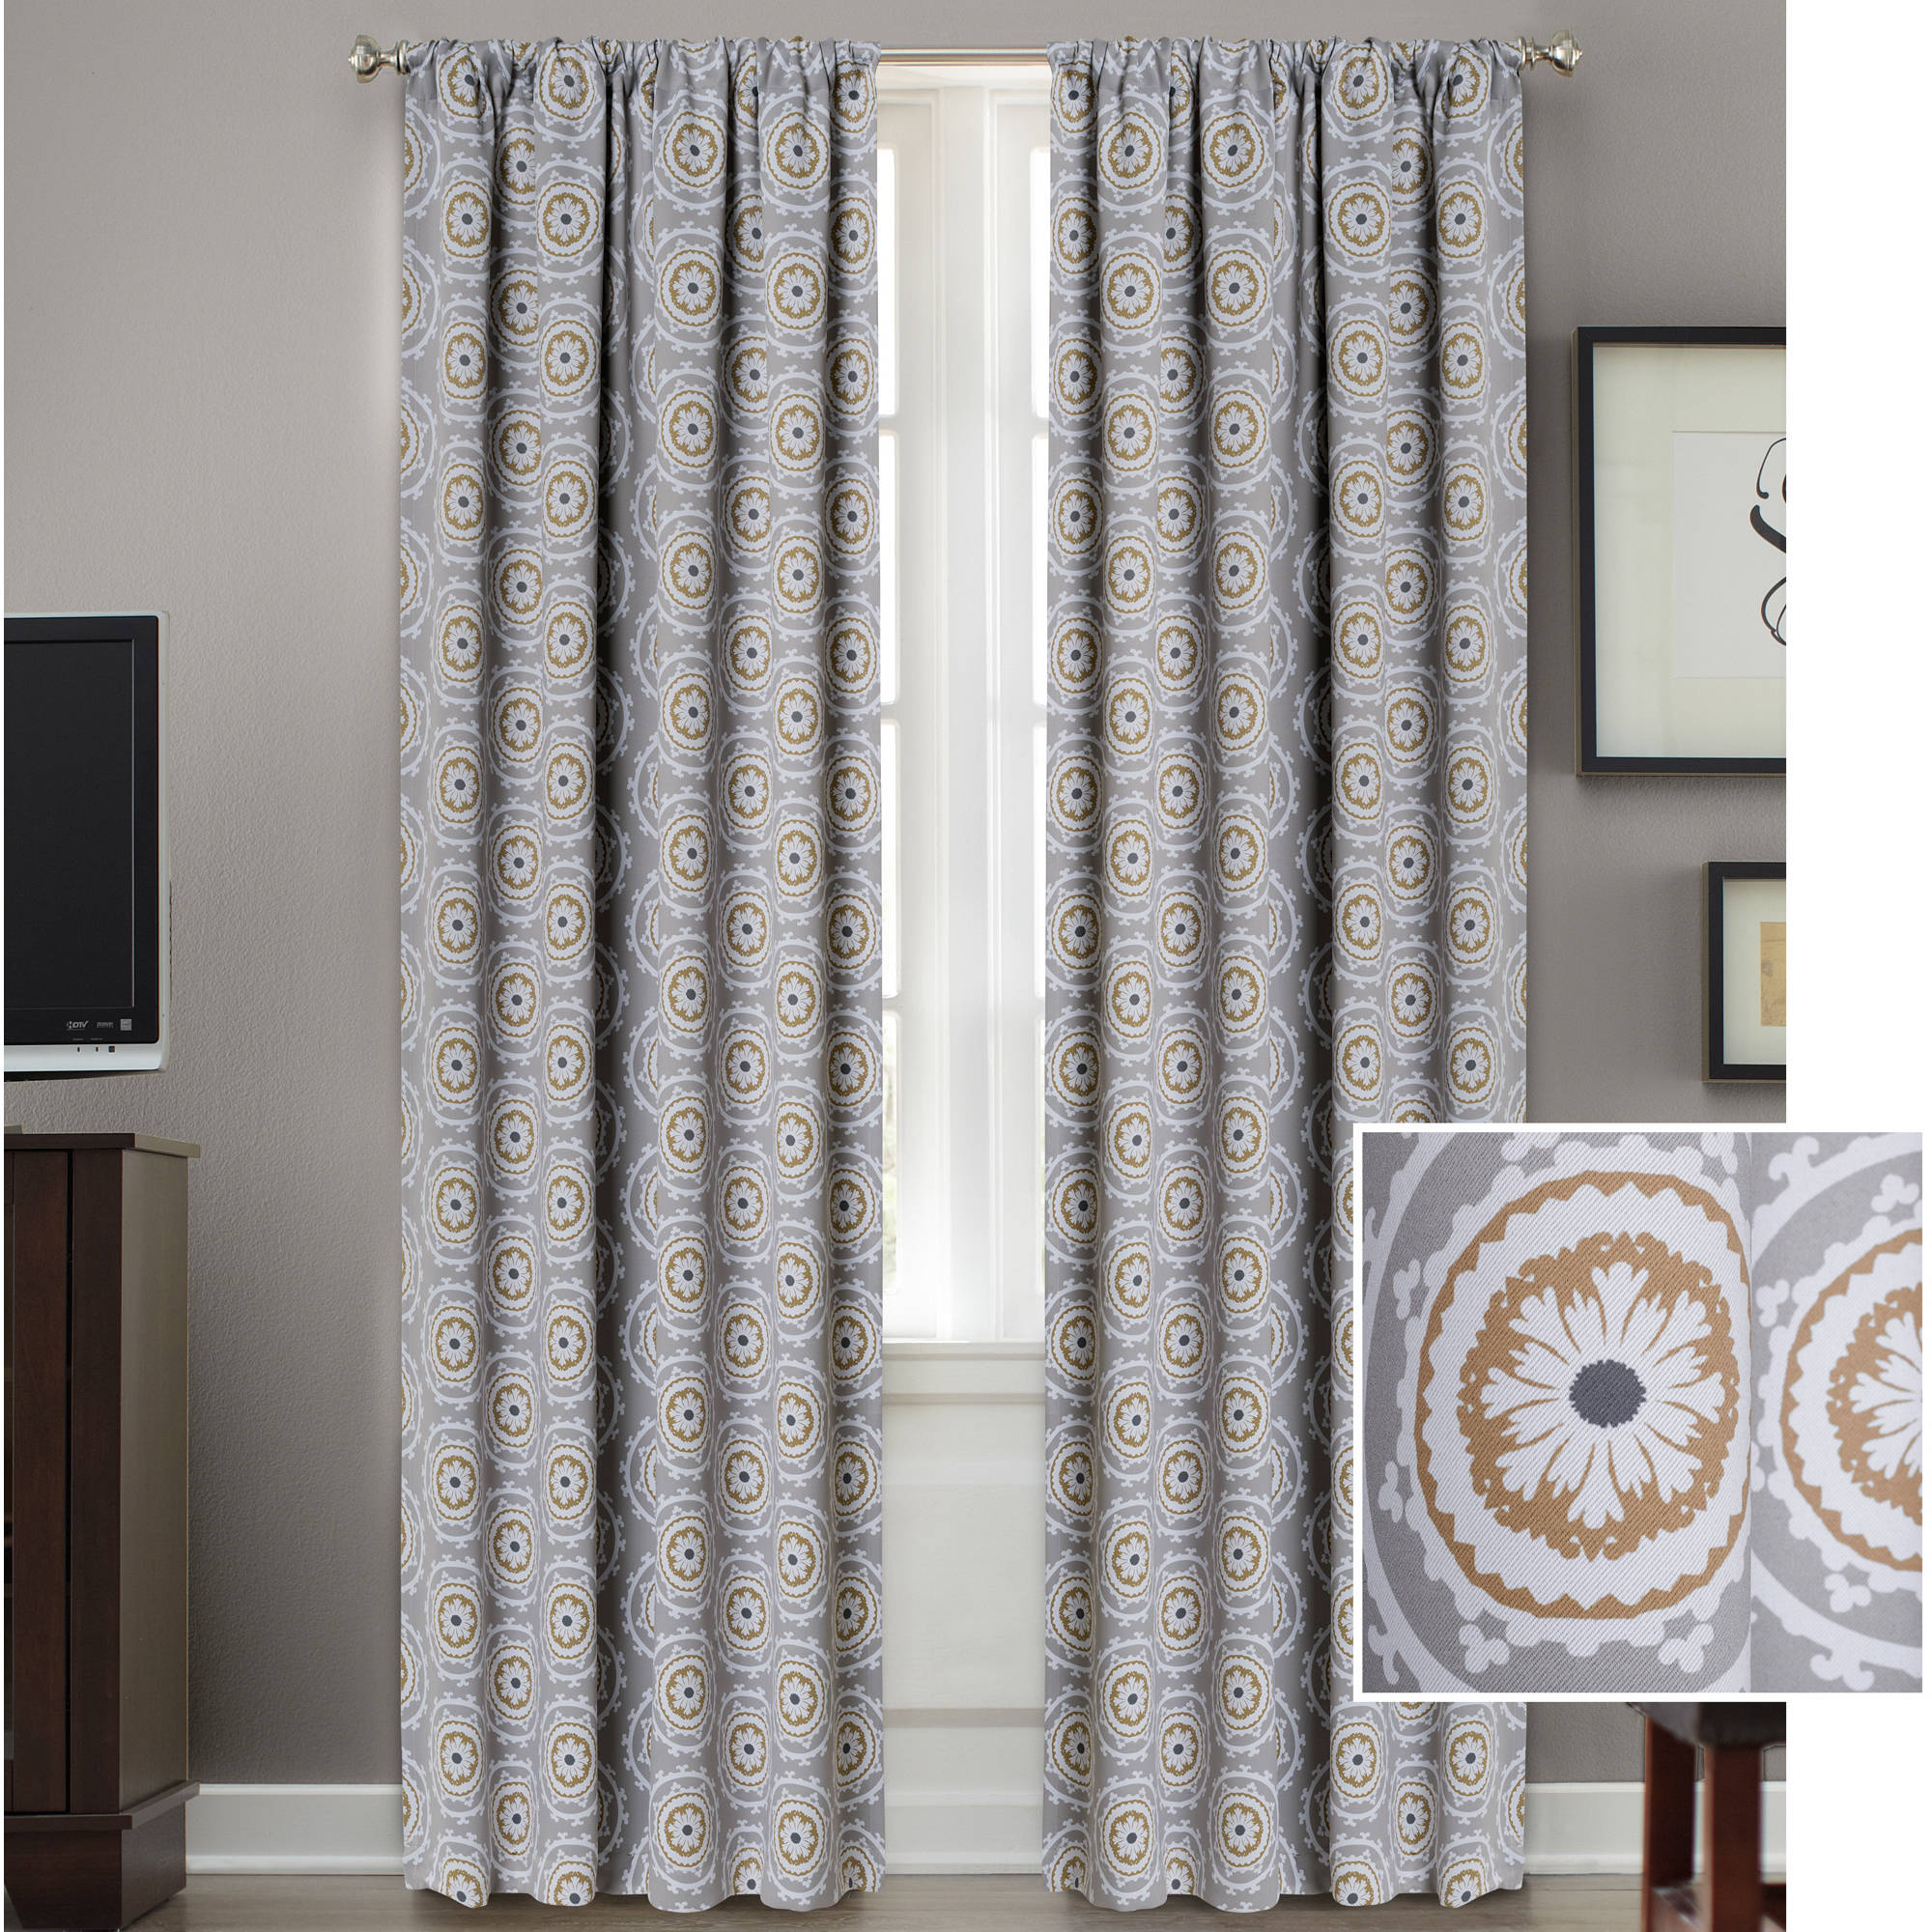 Better Homes and Gardens Medallion Room Darkening Curtain Panel